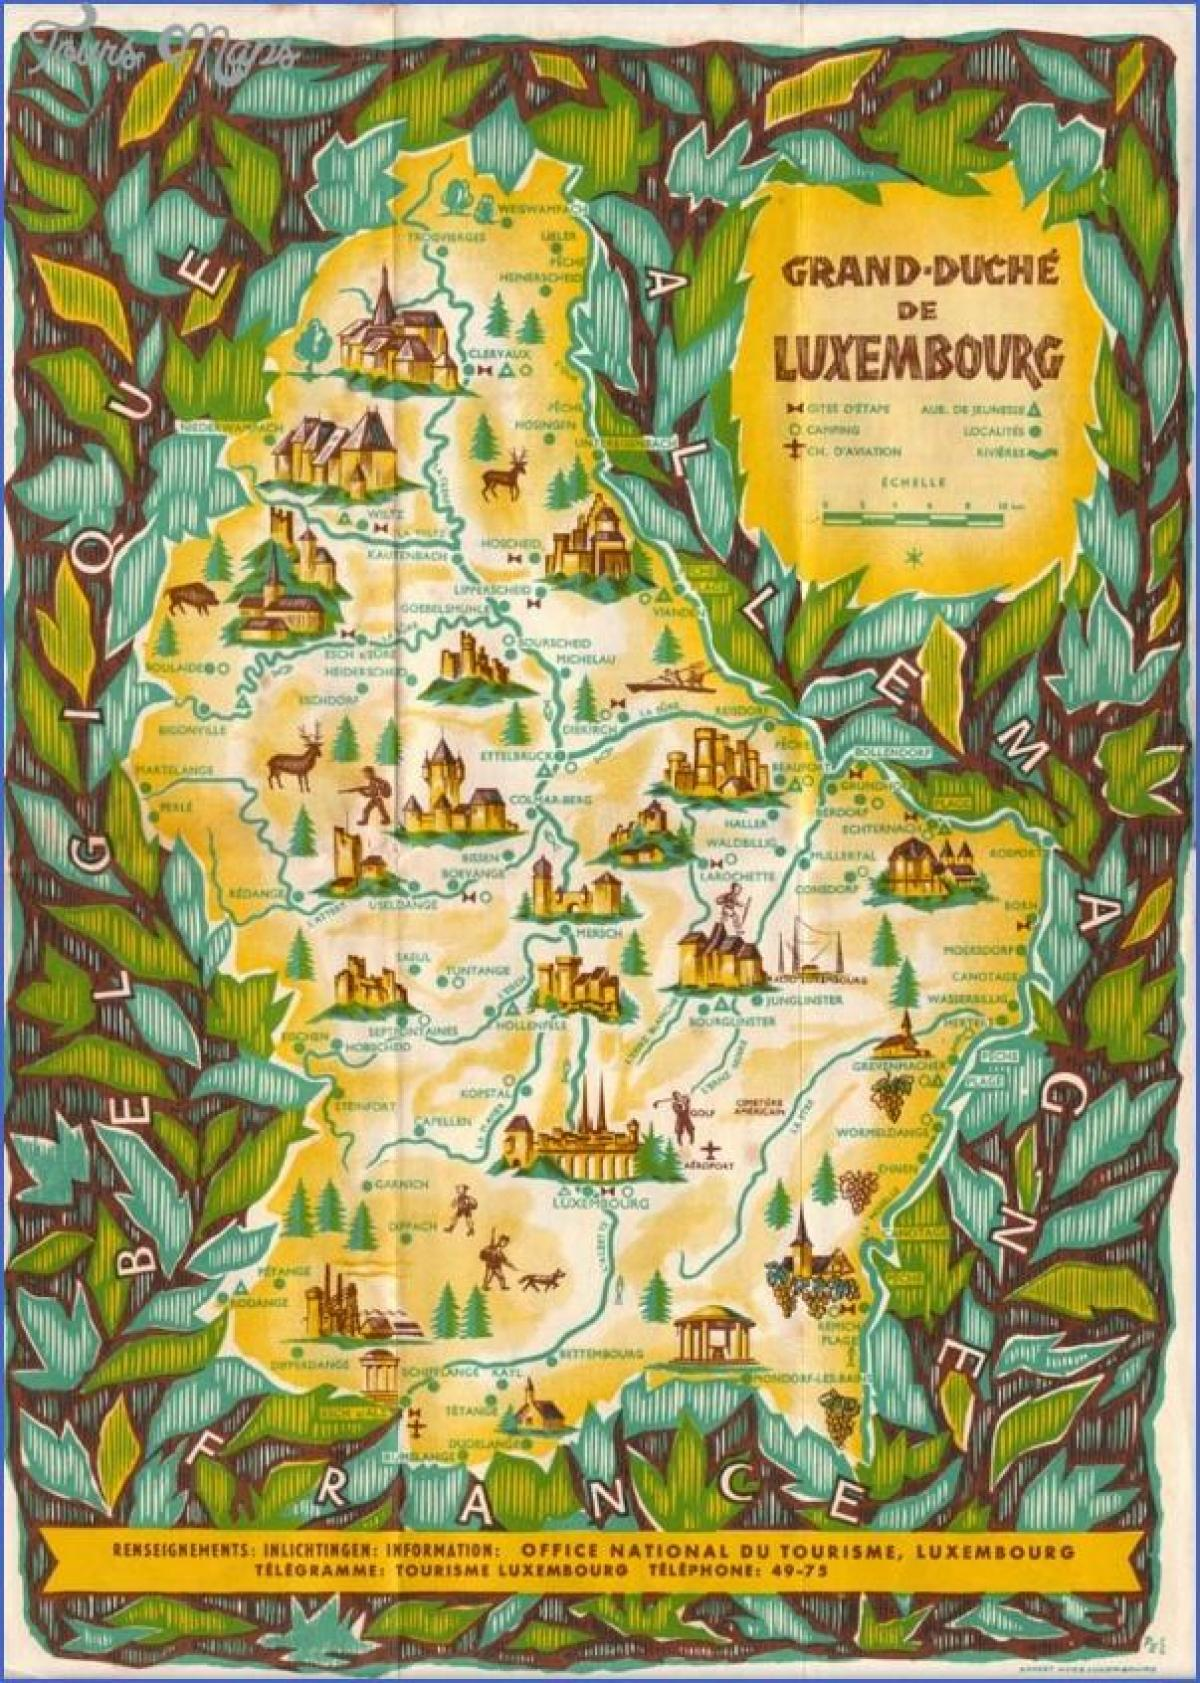 map of Luxembourg sightseeing